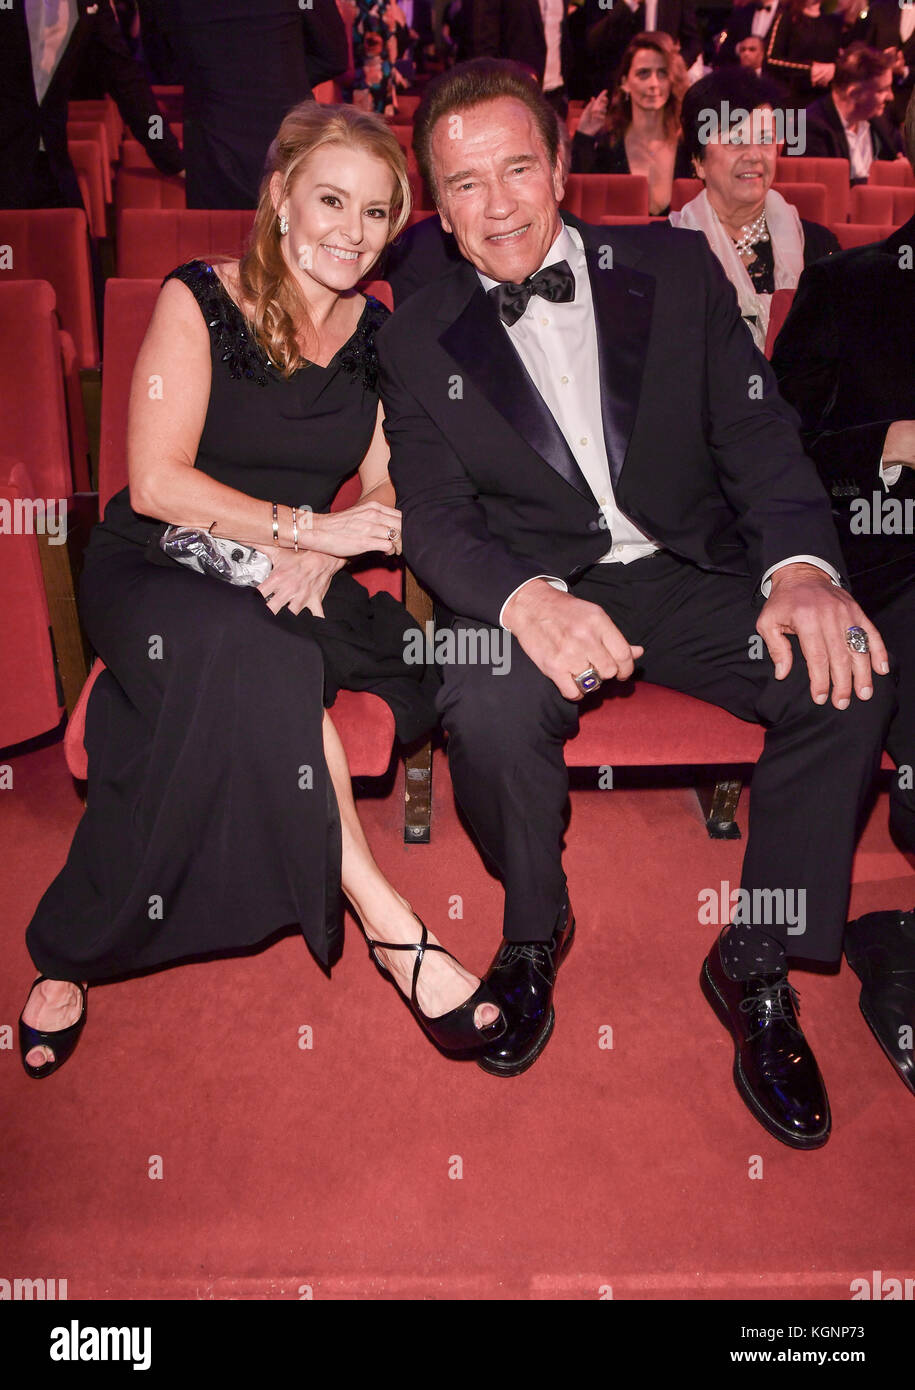 Berlin, Germany. 9th Nov, 2017. Arnold Schwarzenegger (R) and Heather Milligan sit next to each other during the Stock Photo